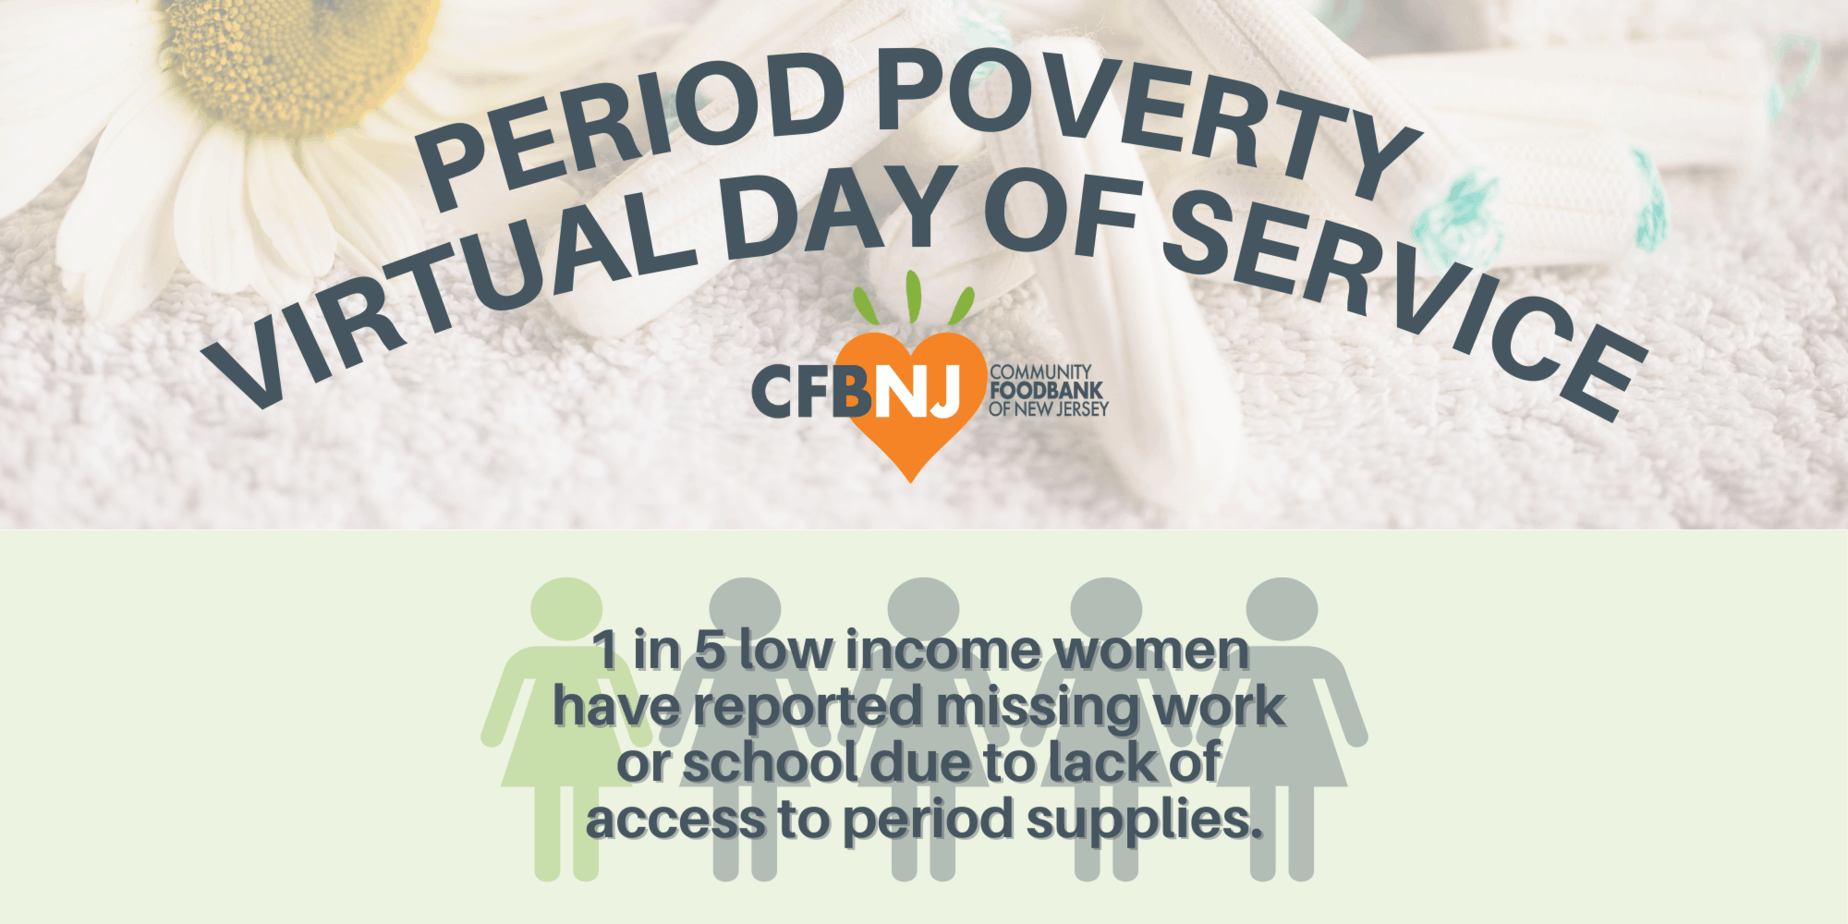 Period Poverty day of service banner with infographic